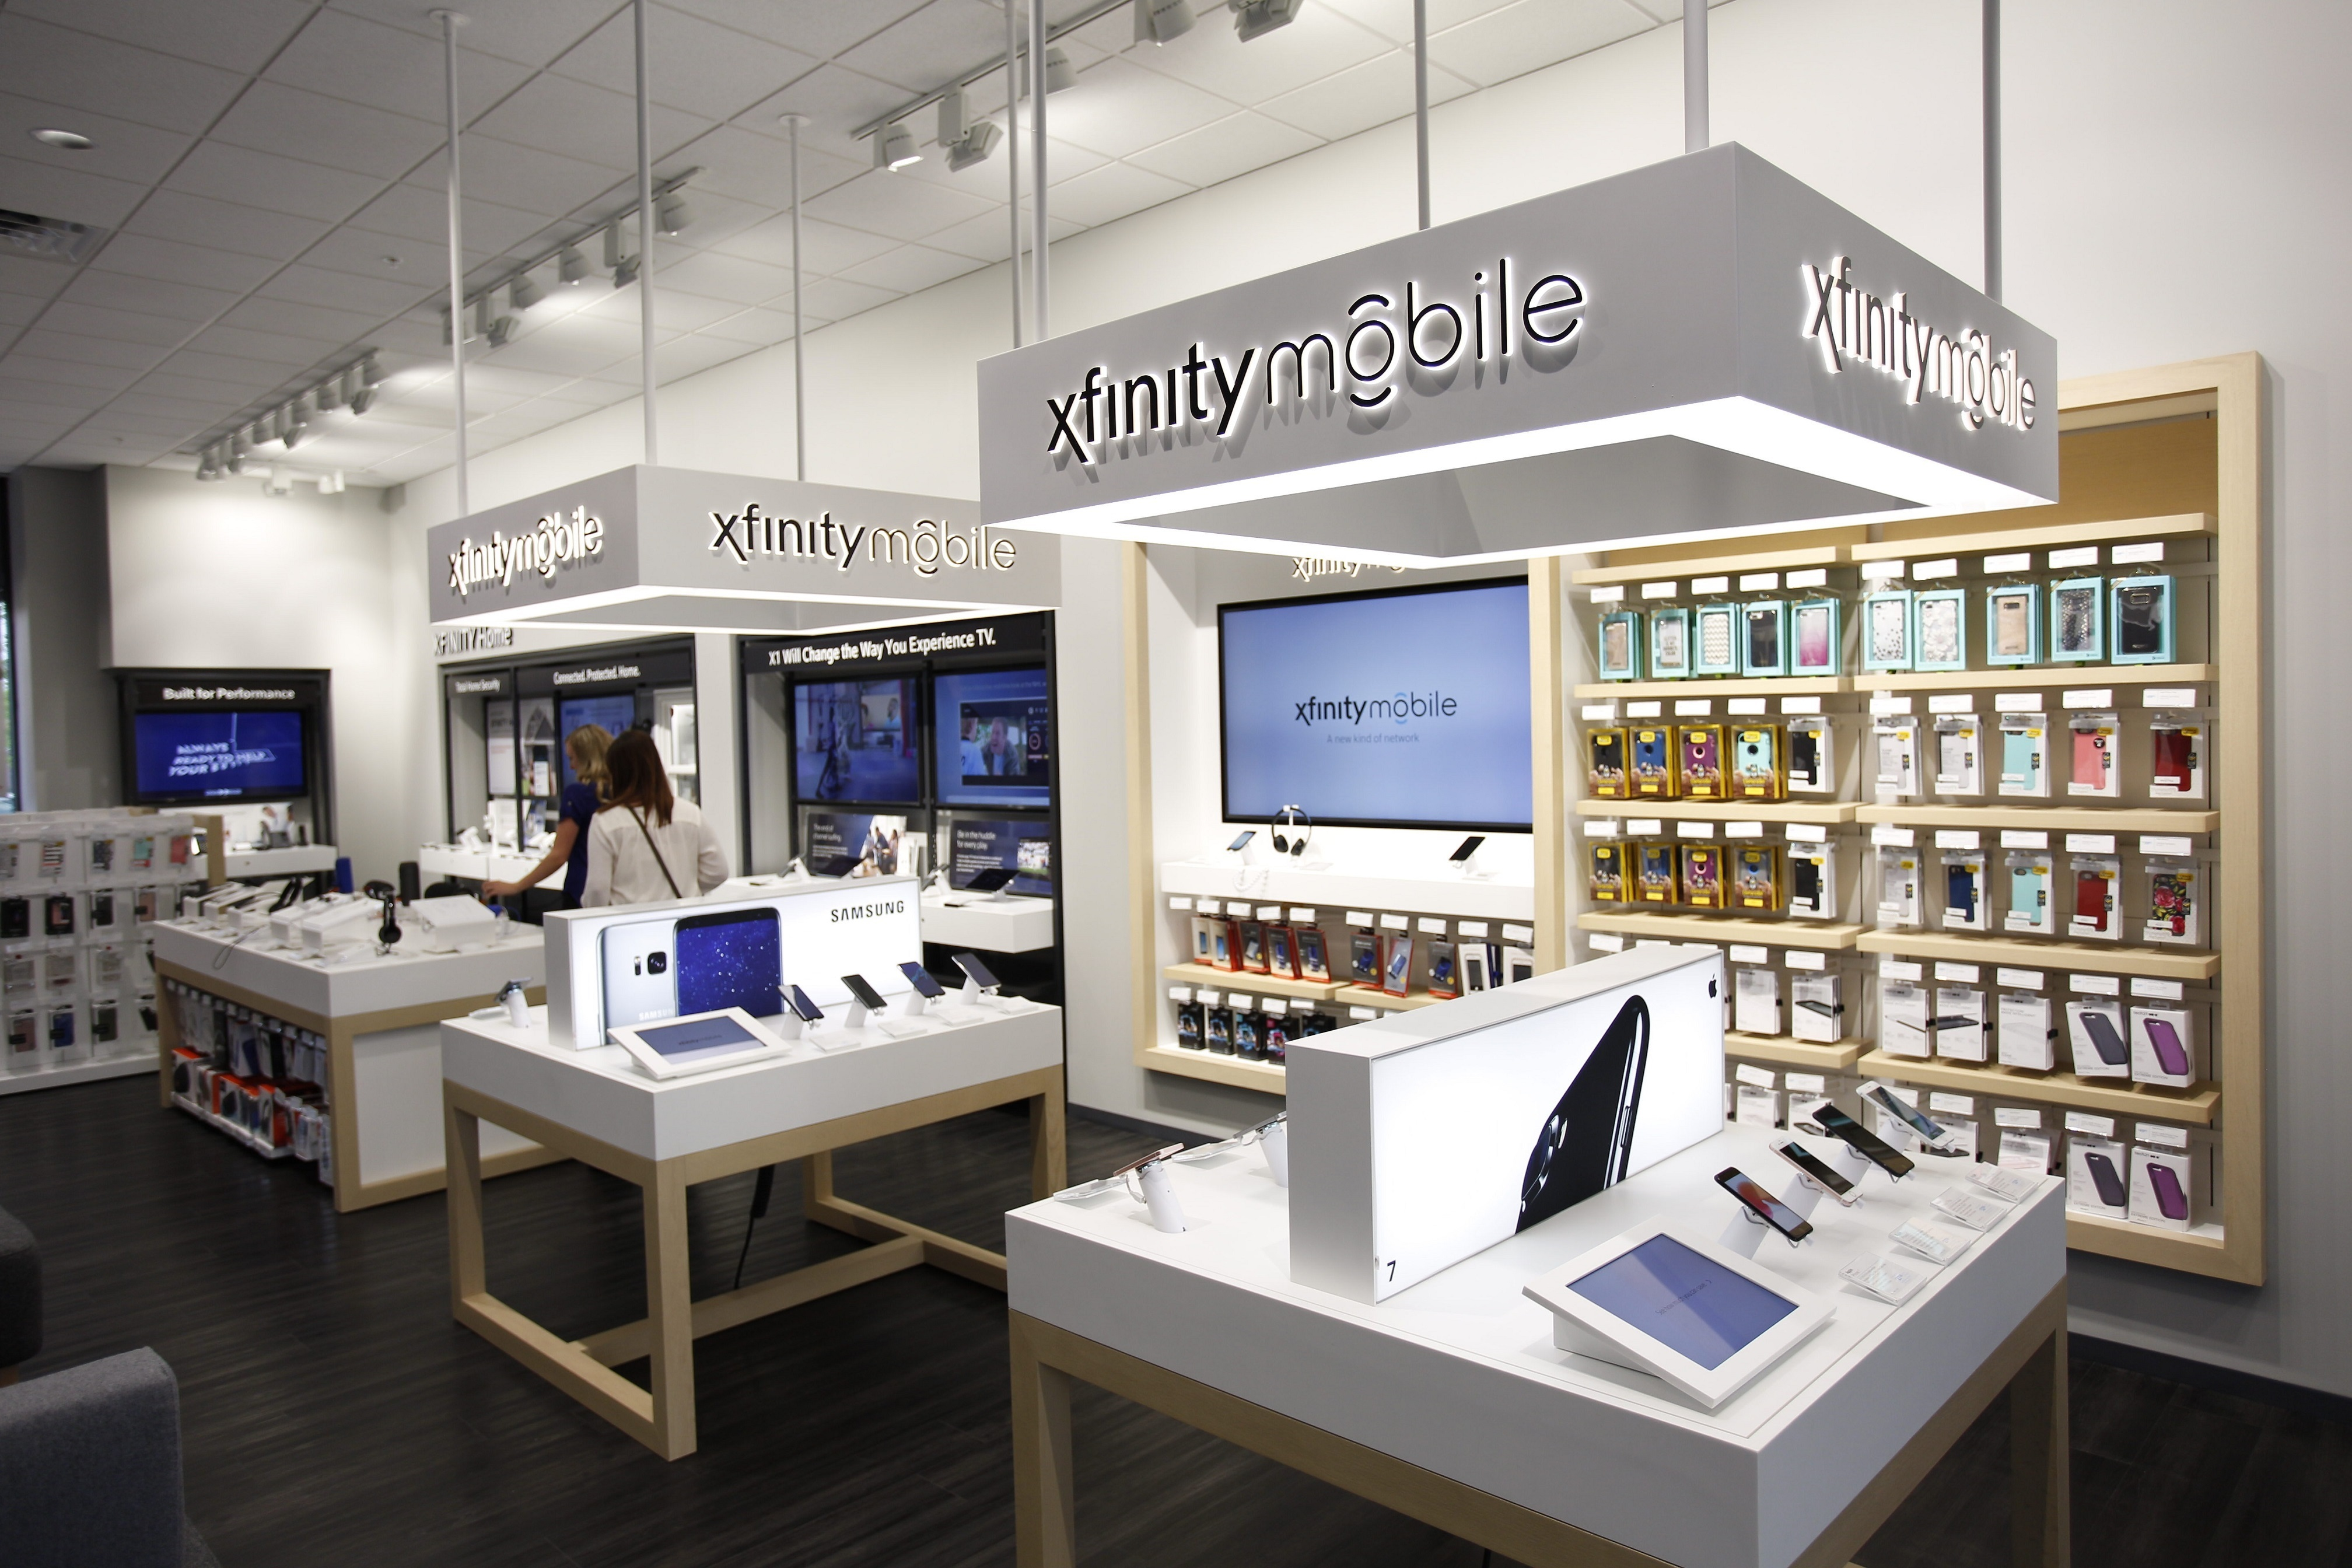 Xfinity Mobile Now Available In Twin Cities Xfinity Store Locations |  Business Wire